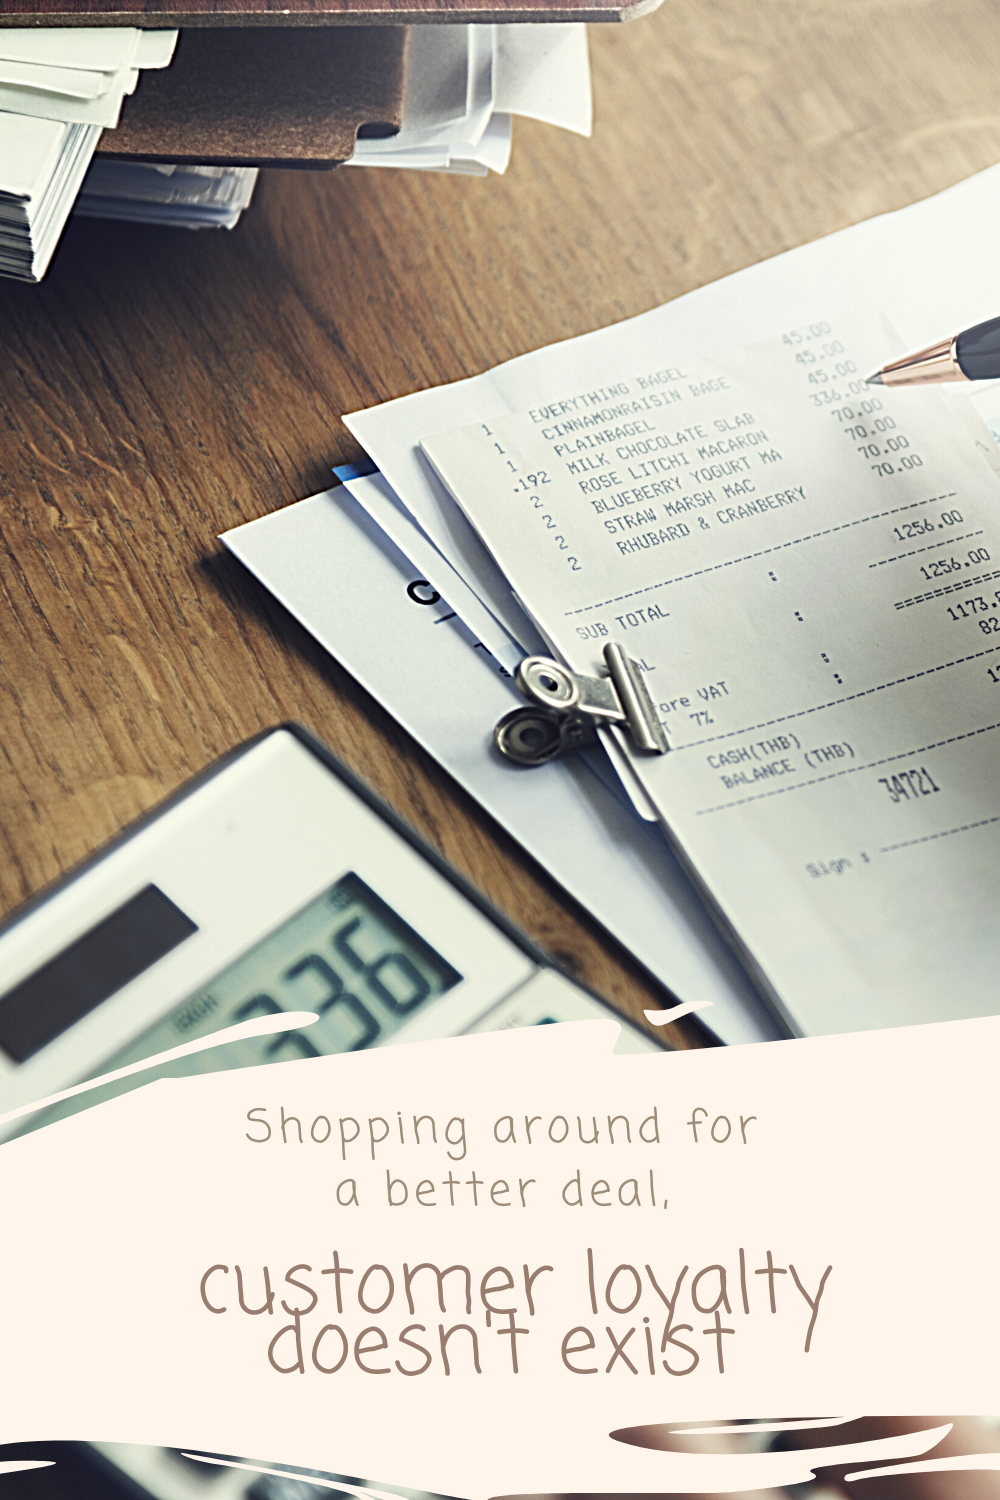 Shopping around for a better deal, customer loyalty doesn't exist